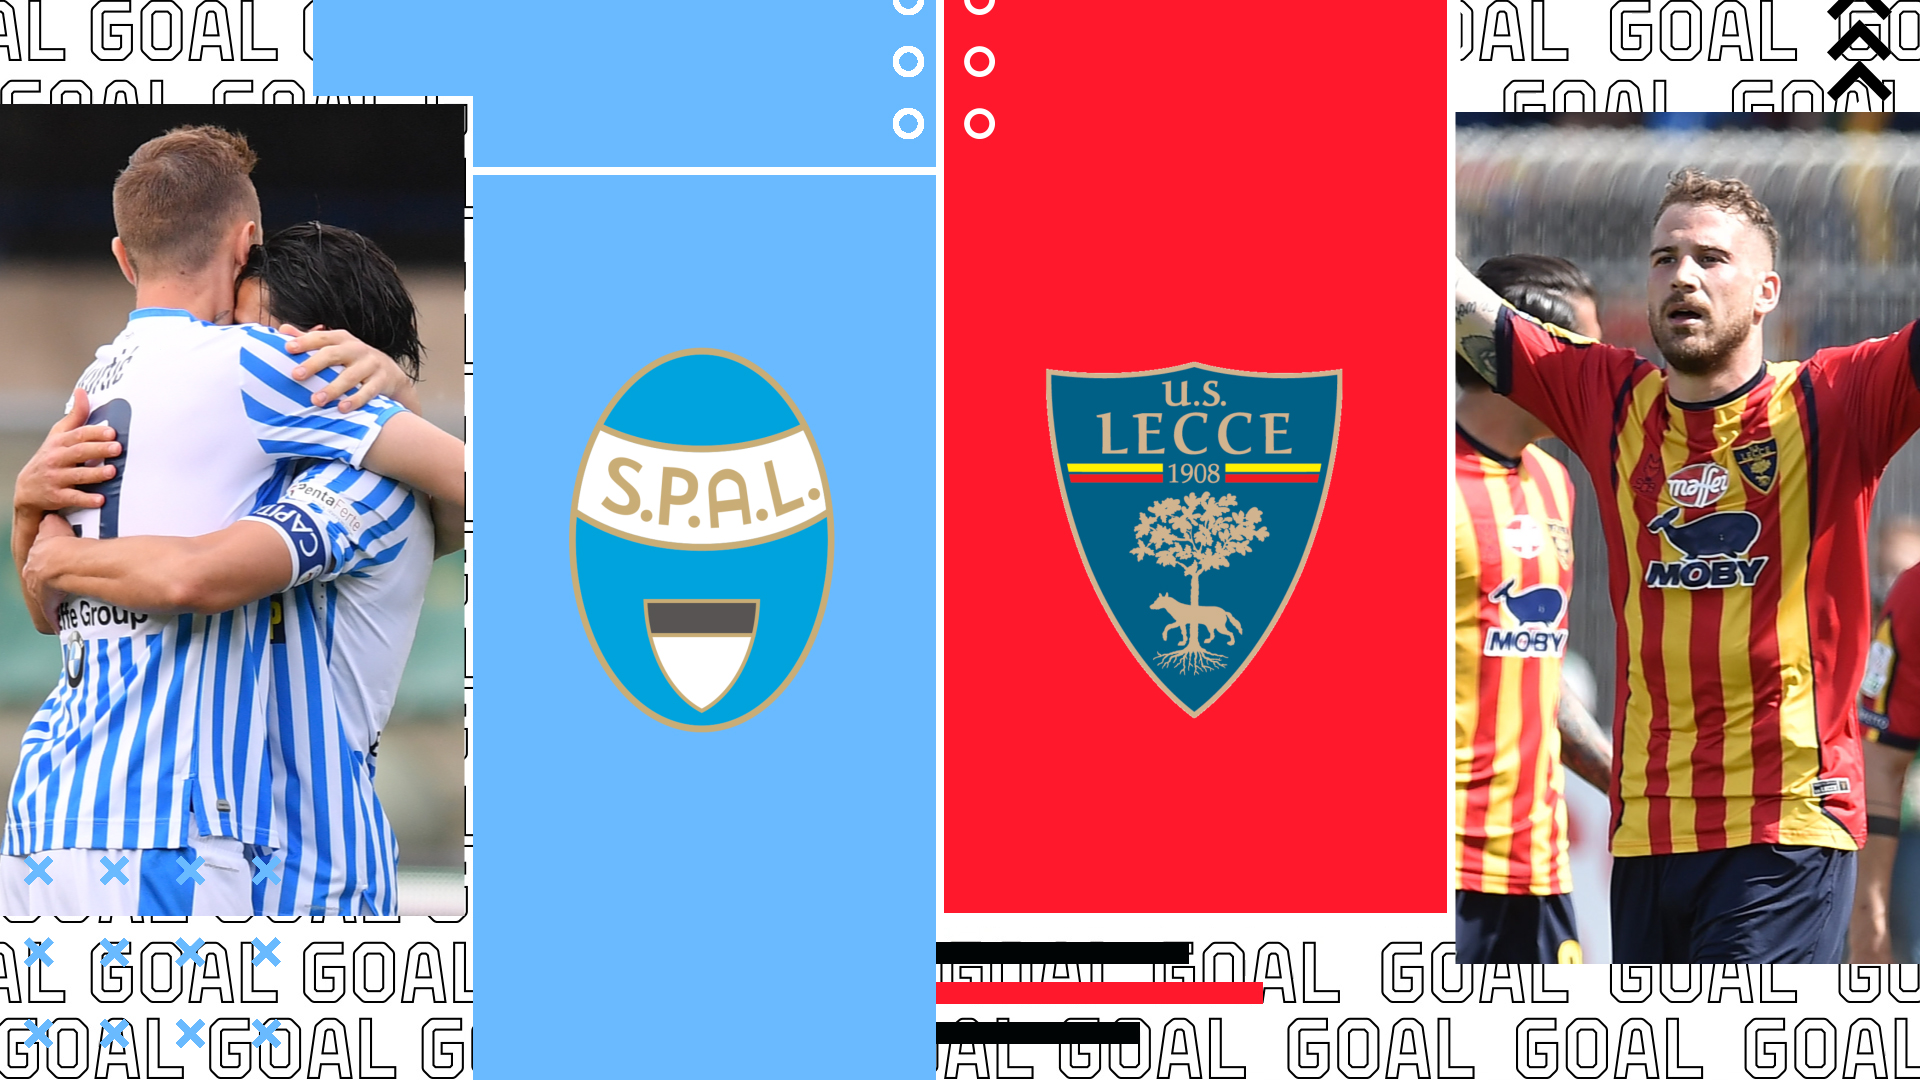 Spal-Lecce tv streaming